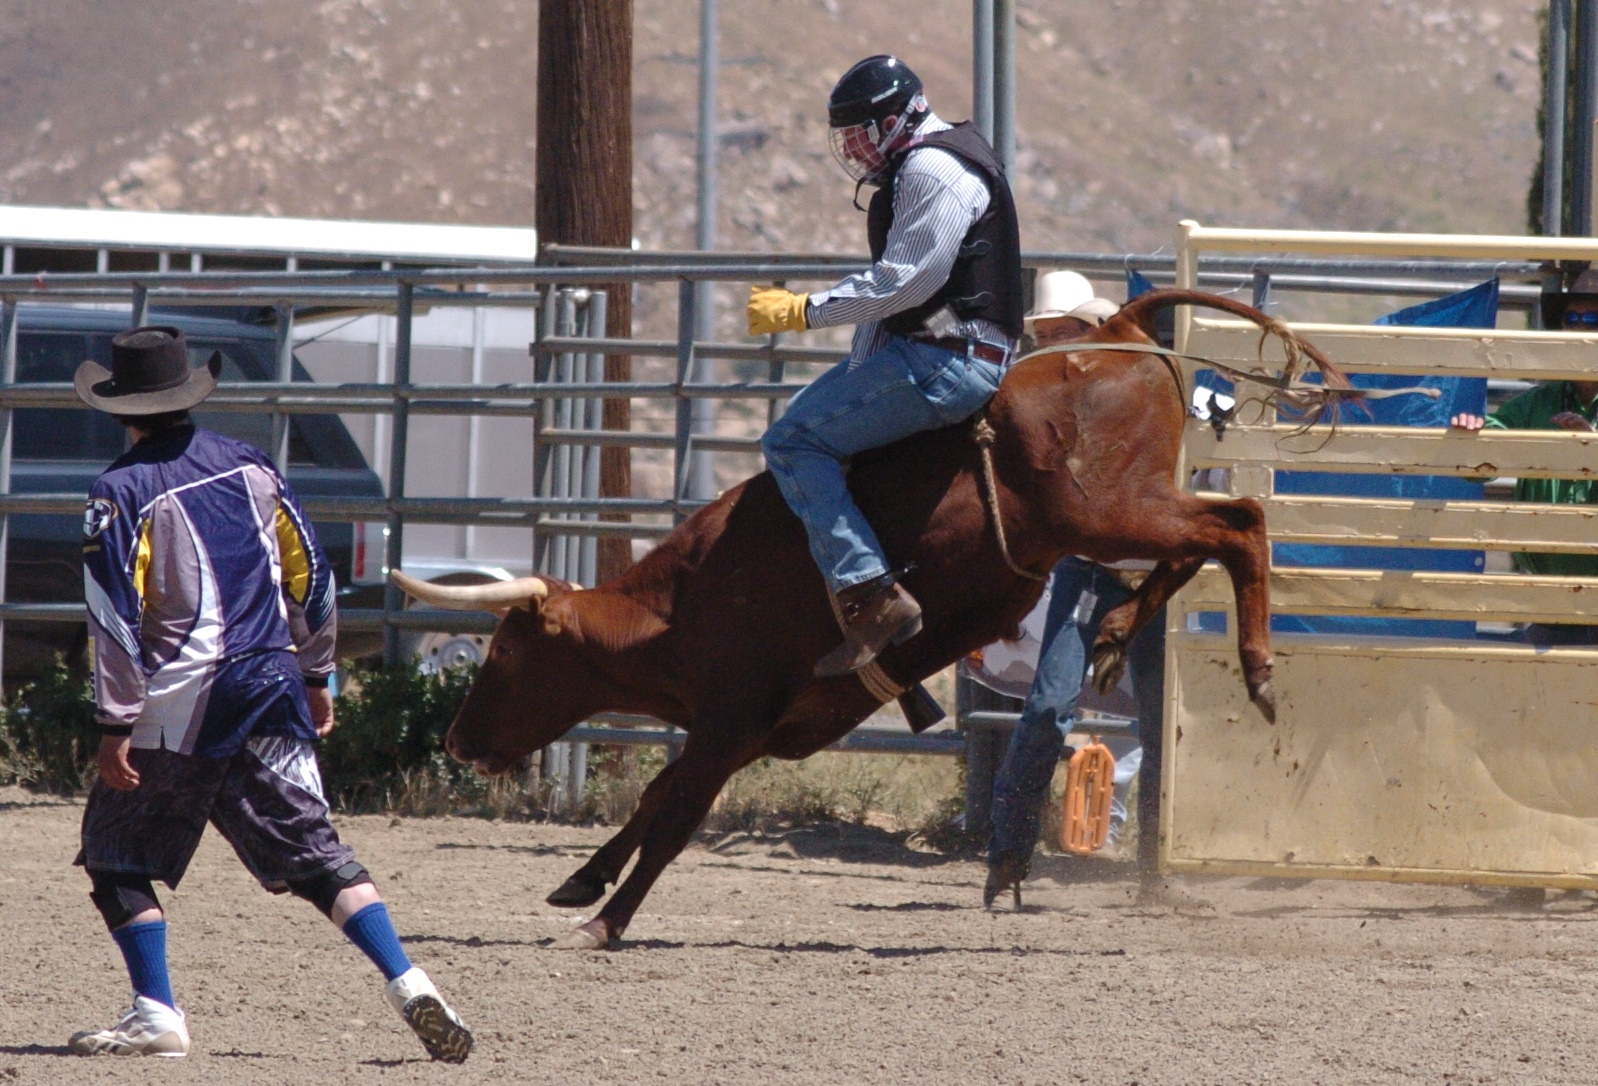 Rod Thornberry from GSGRA-GPSC in 2014 Hot Rodeo